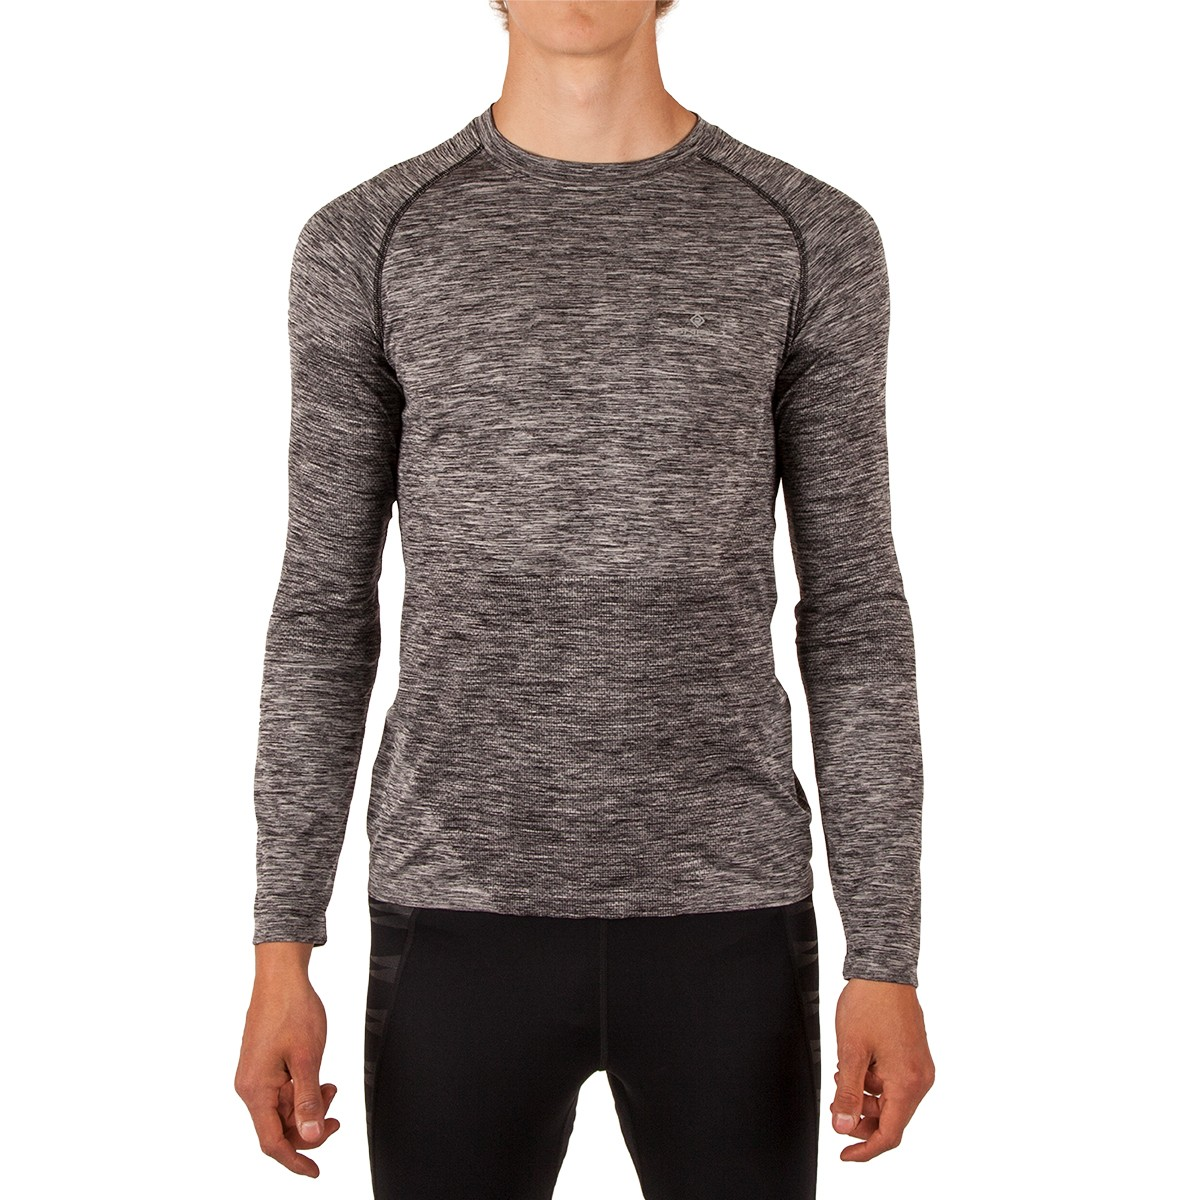 Ronhill Men's Advance Space-Dye Long Sleeve Tee